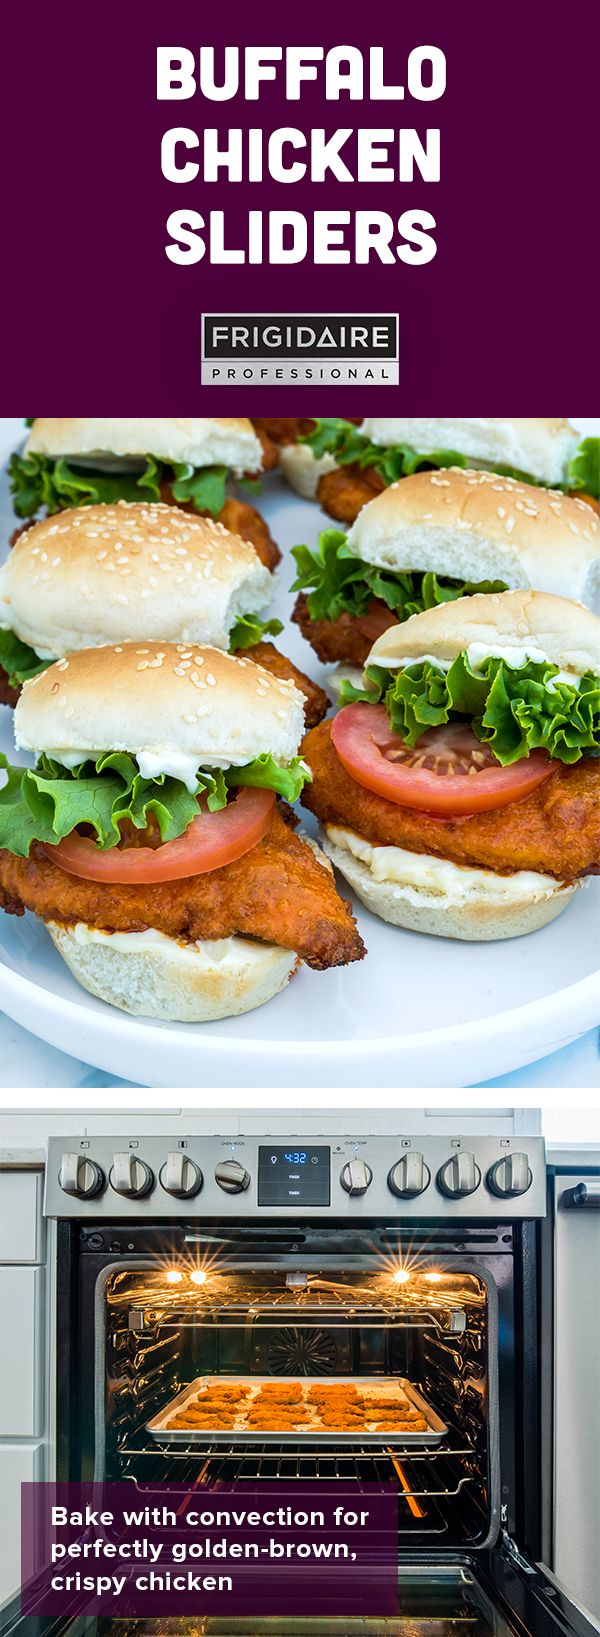 These buffalo chicken sliders have all the classic flavors of your favorite chicken wings, burgerized and ready to feed a hungry crowd at your next homegating party. Click for full recipe by @dennisprescott.